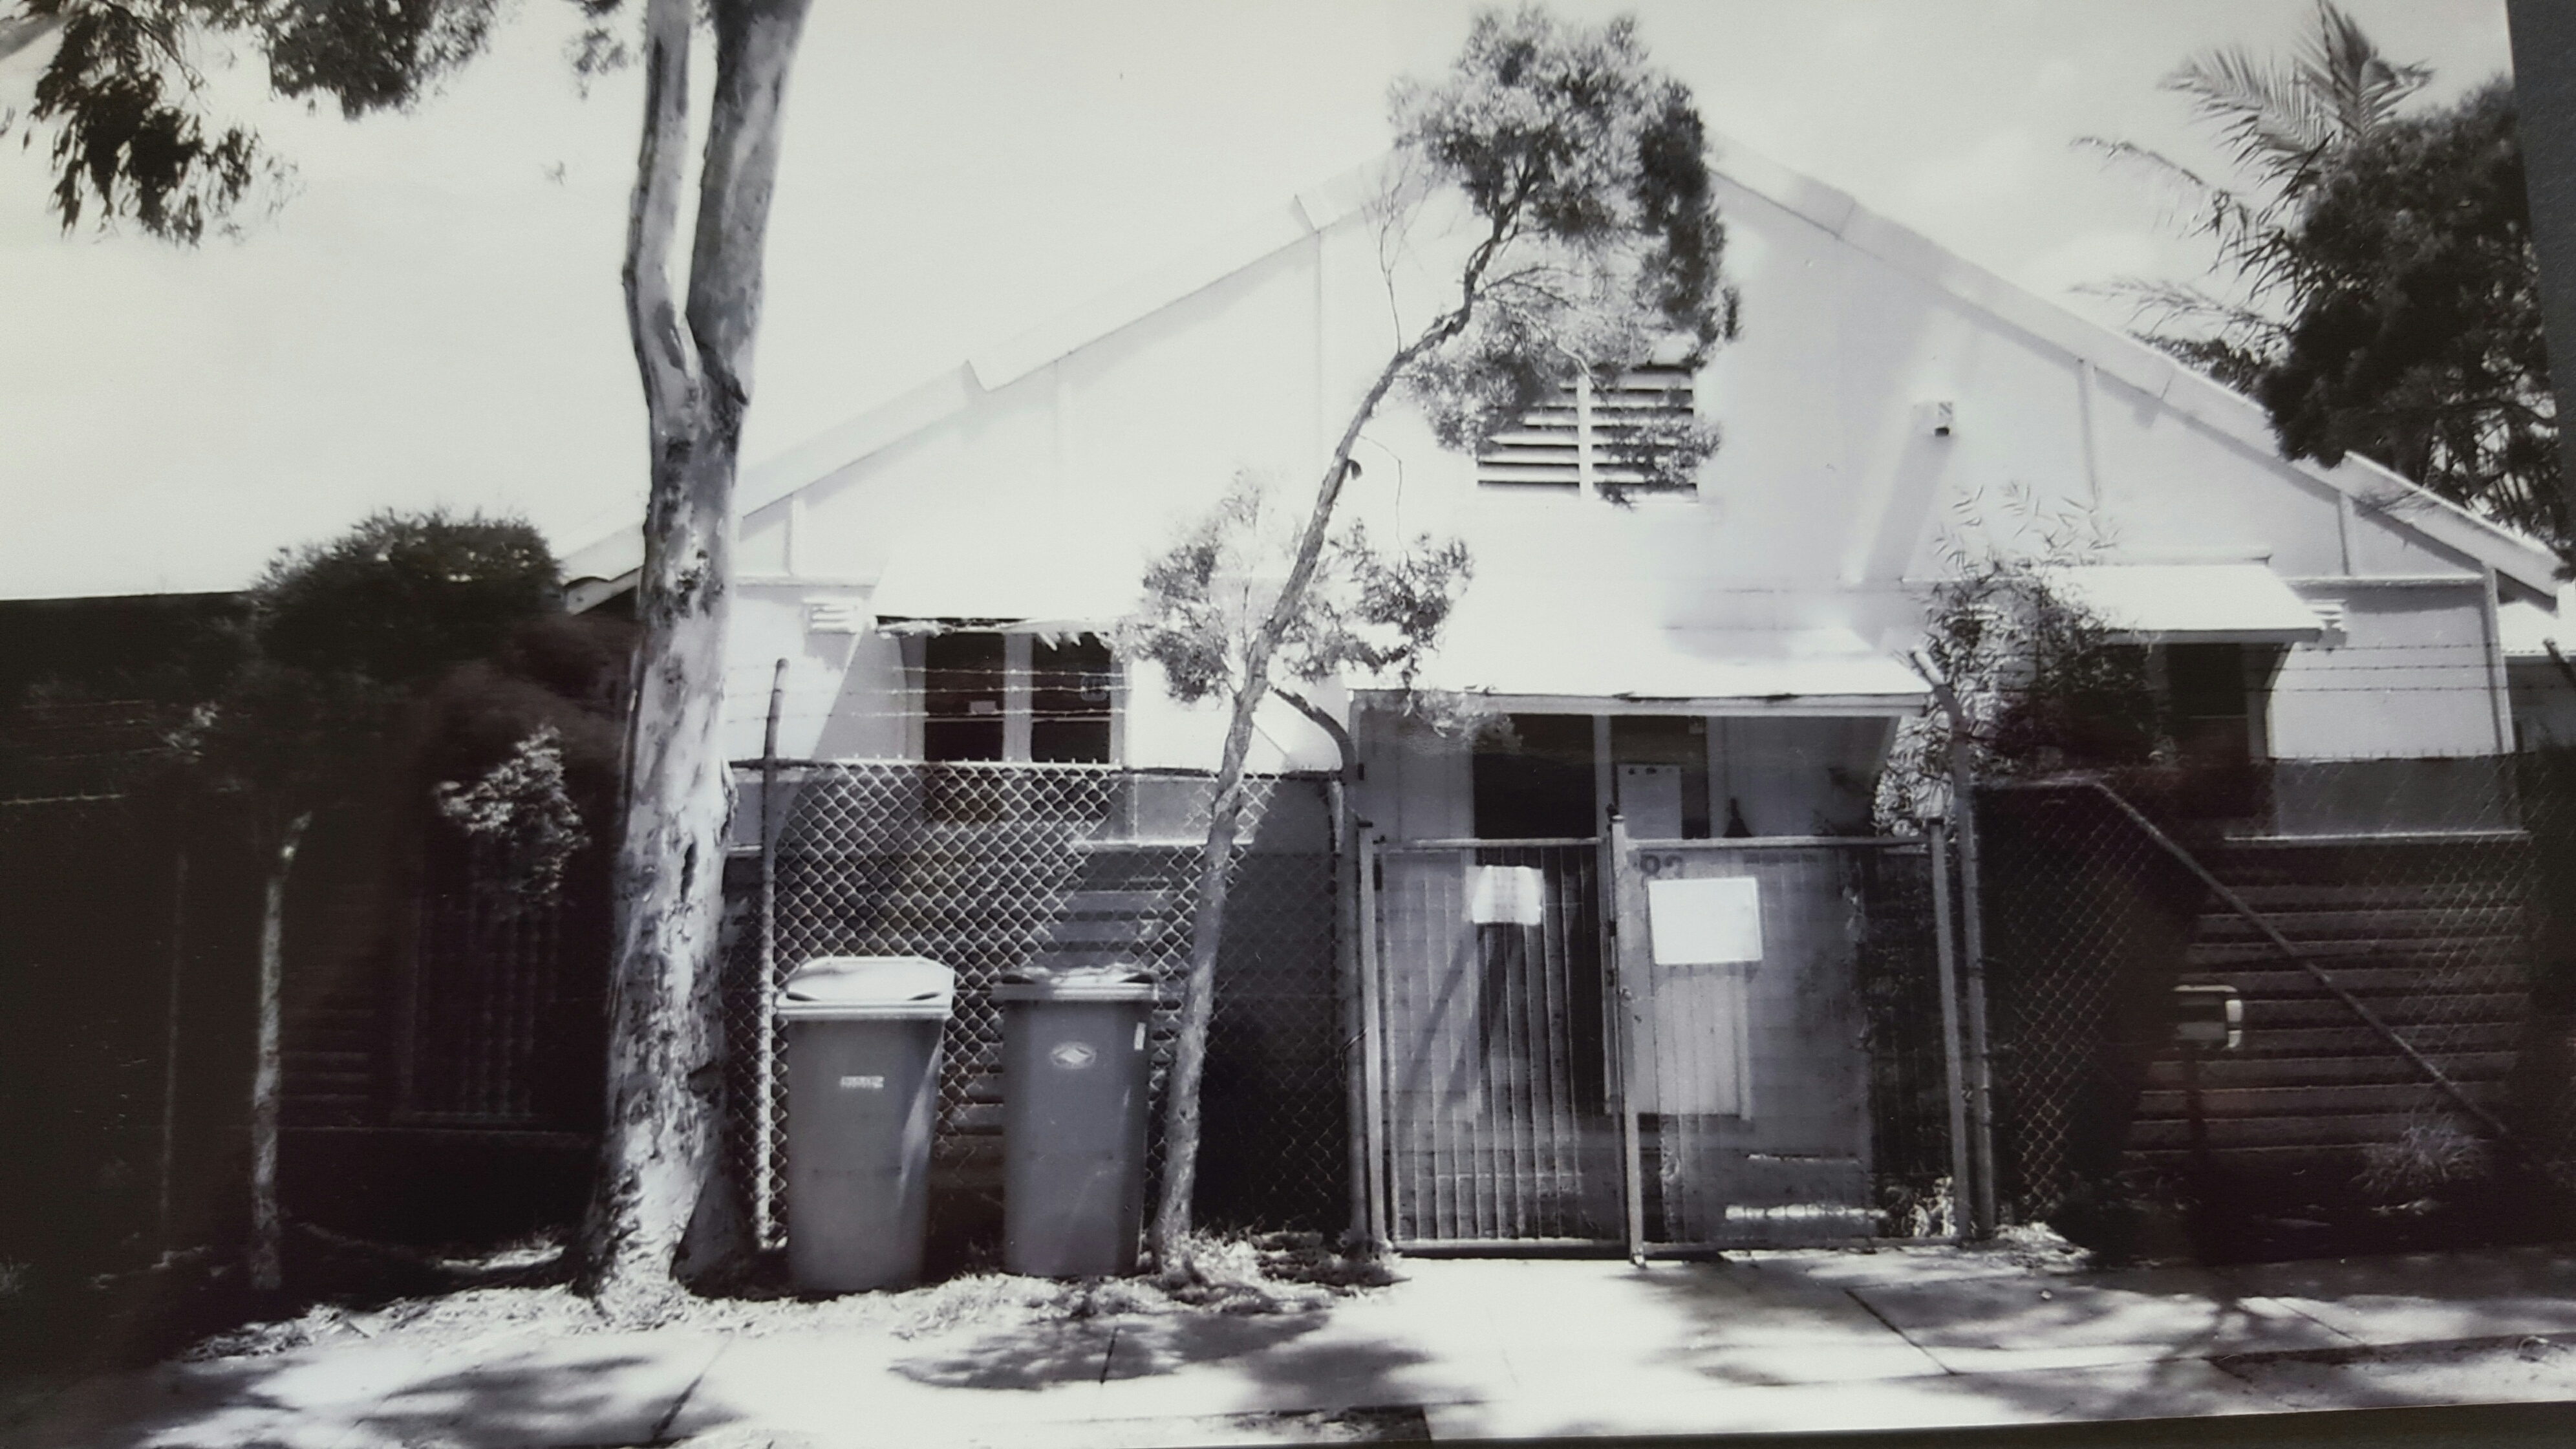 SOS Preschool Original Building